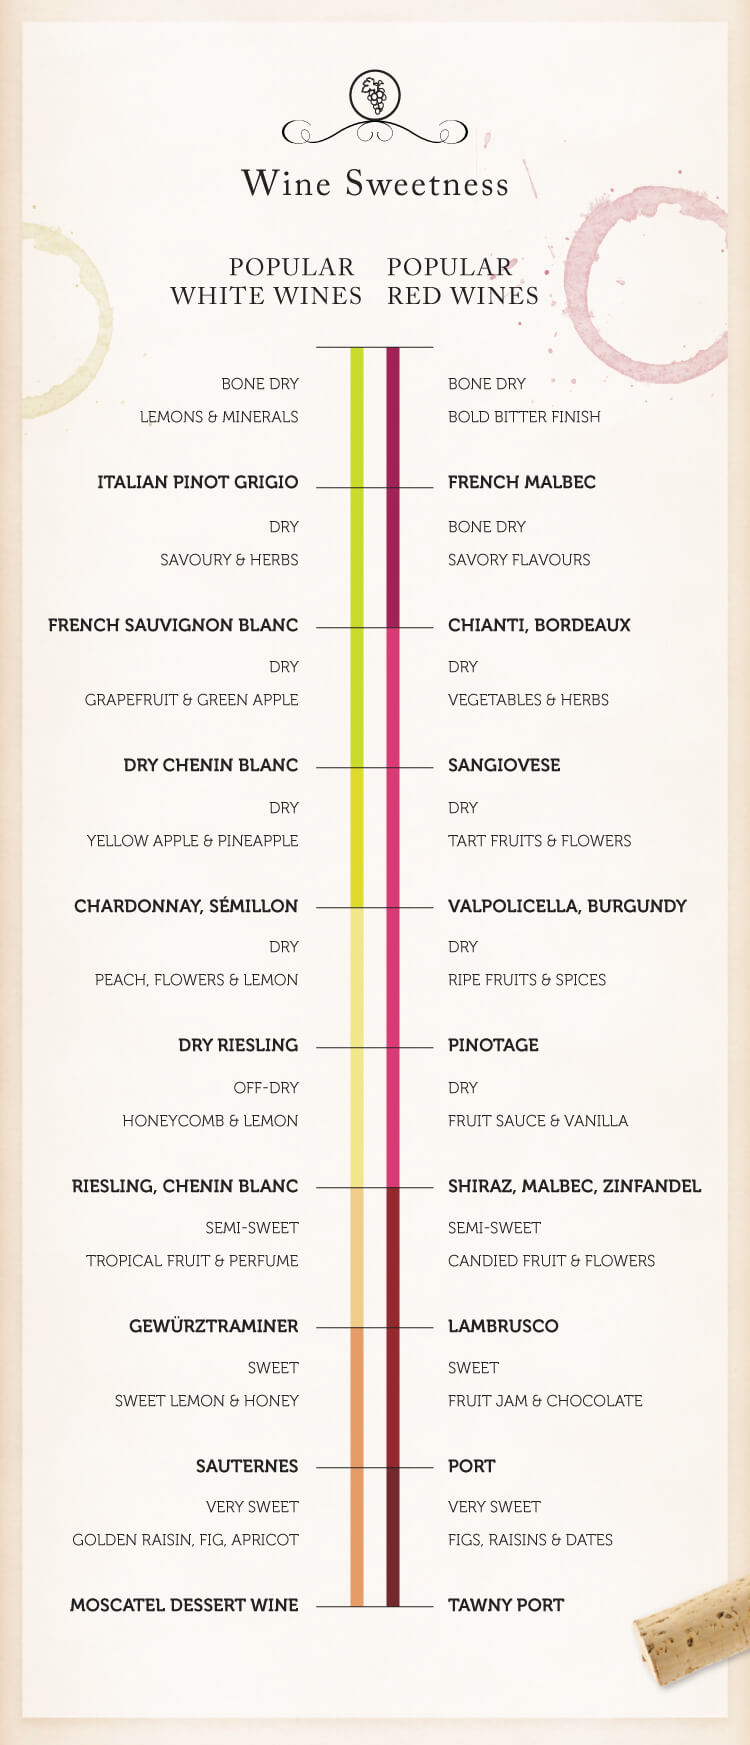 How To Pick Kitchen Paint Colors: This Wine 101 Series Of Charts Will Have You Looking Like